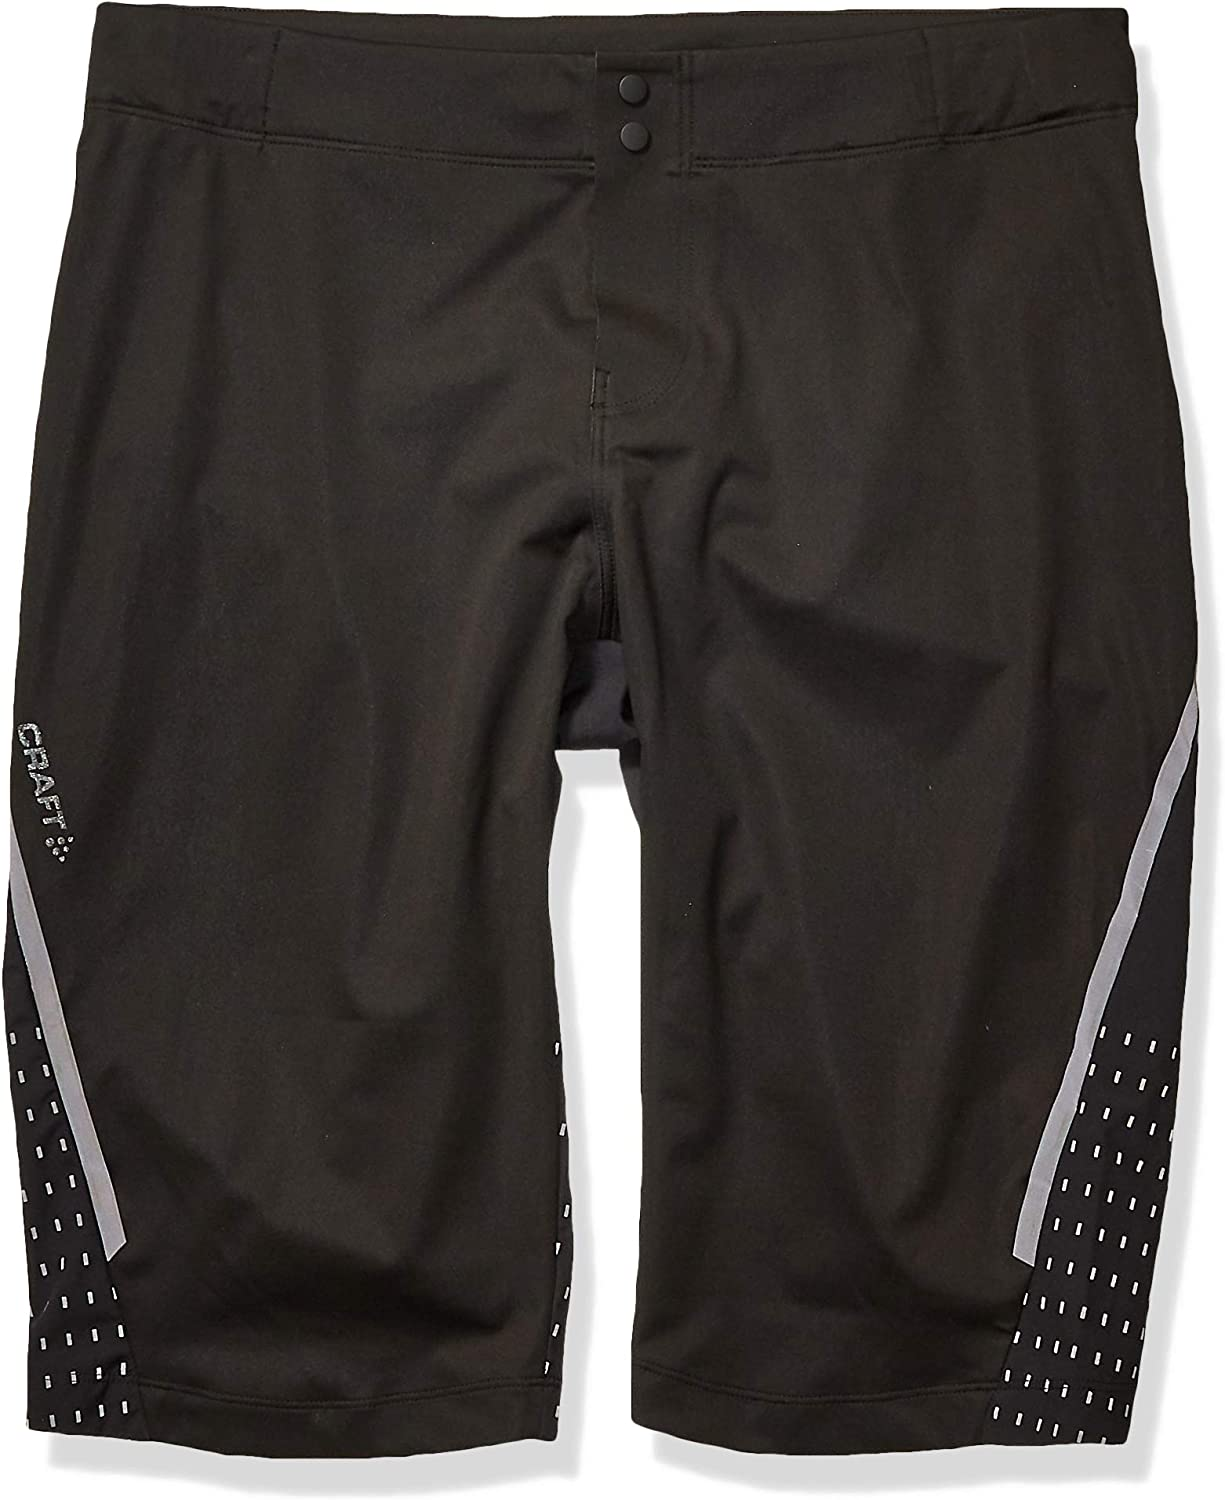 Craft Mens Hale Hydro Ergonomic Reflective Cycling Bike Shorts